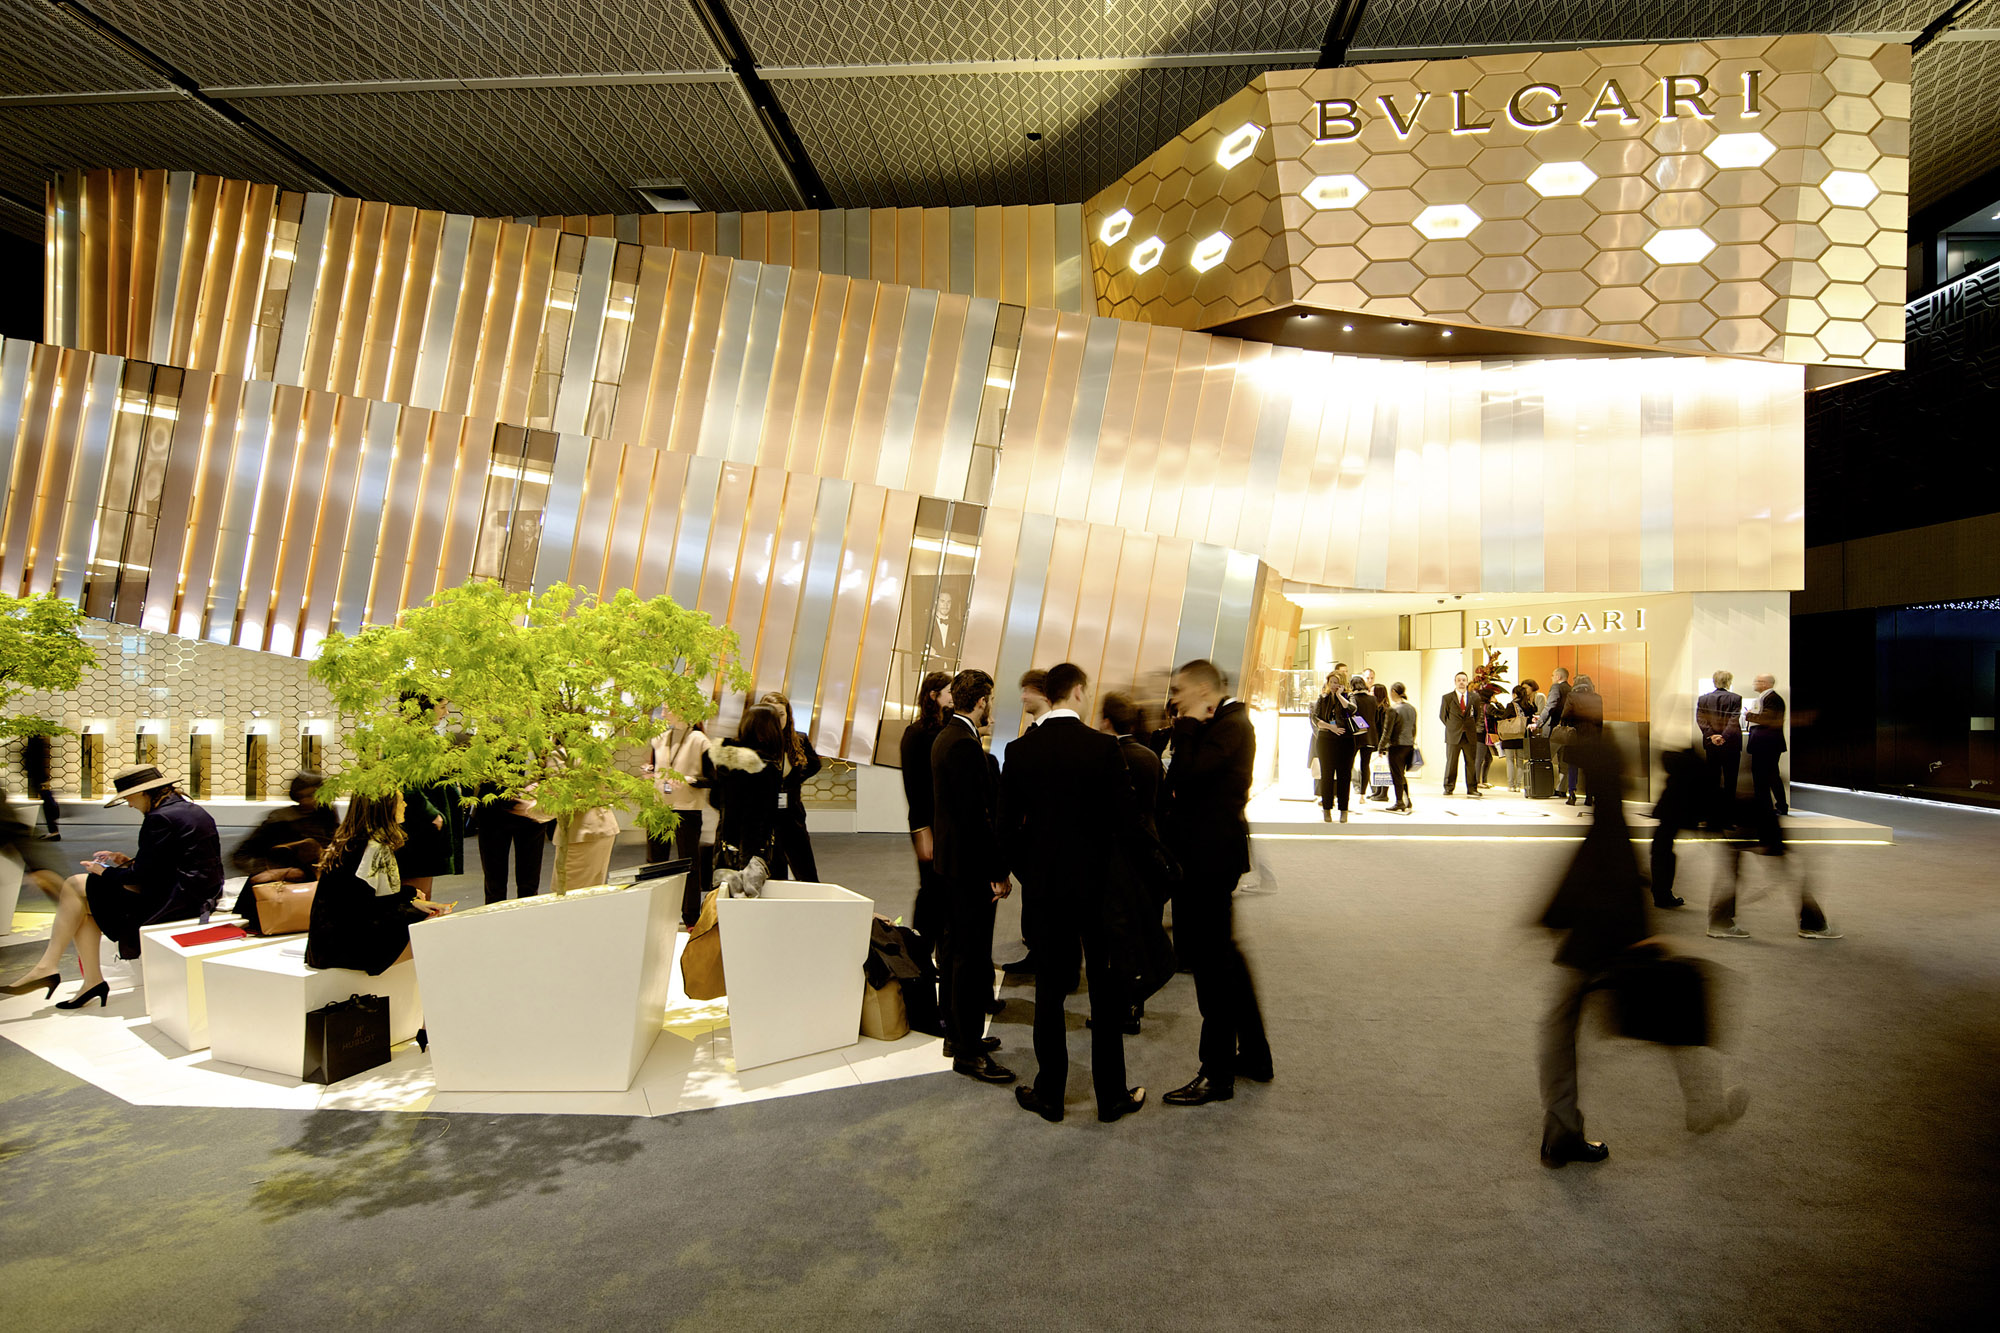 Bvlgari Stand - BASELWORLD 2014 - Hall 1.0